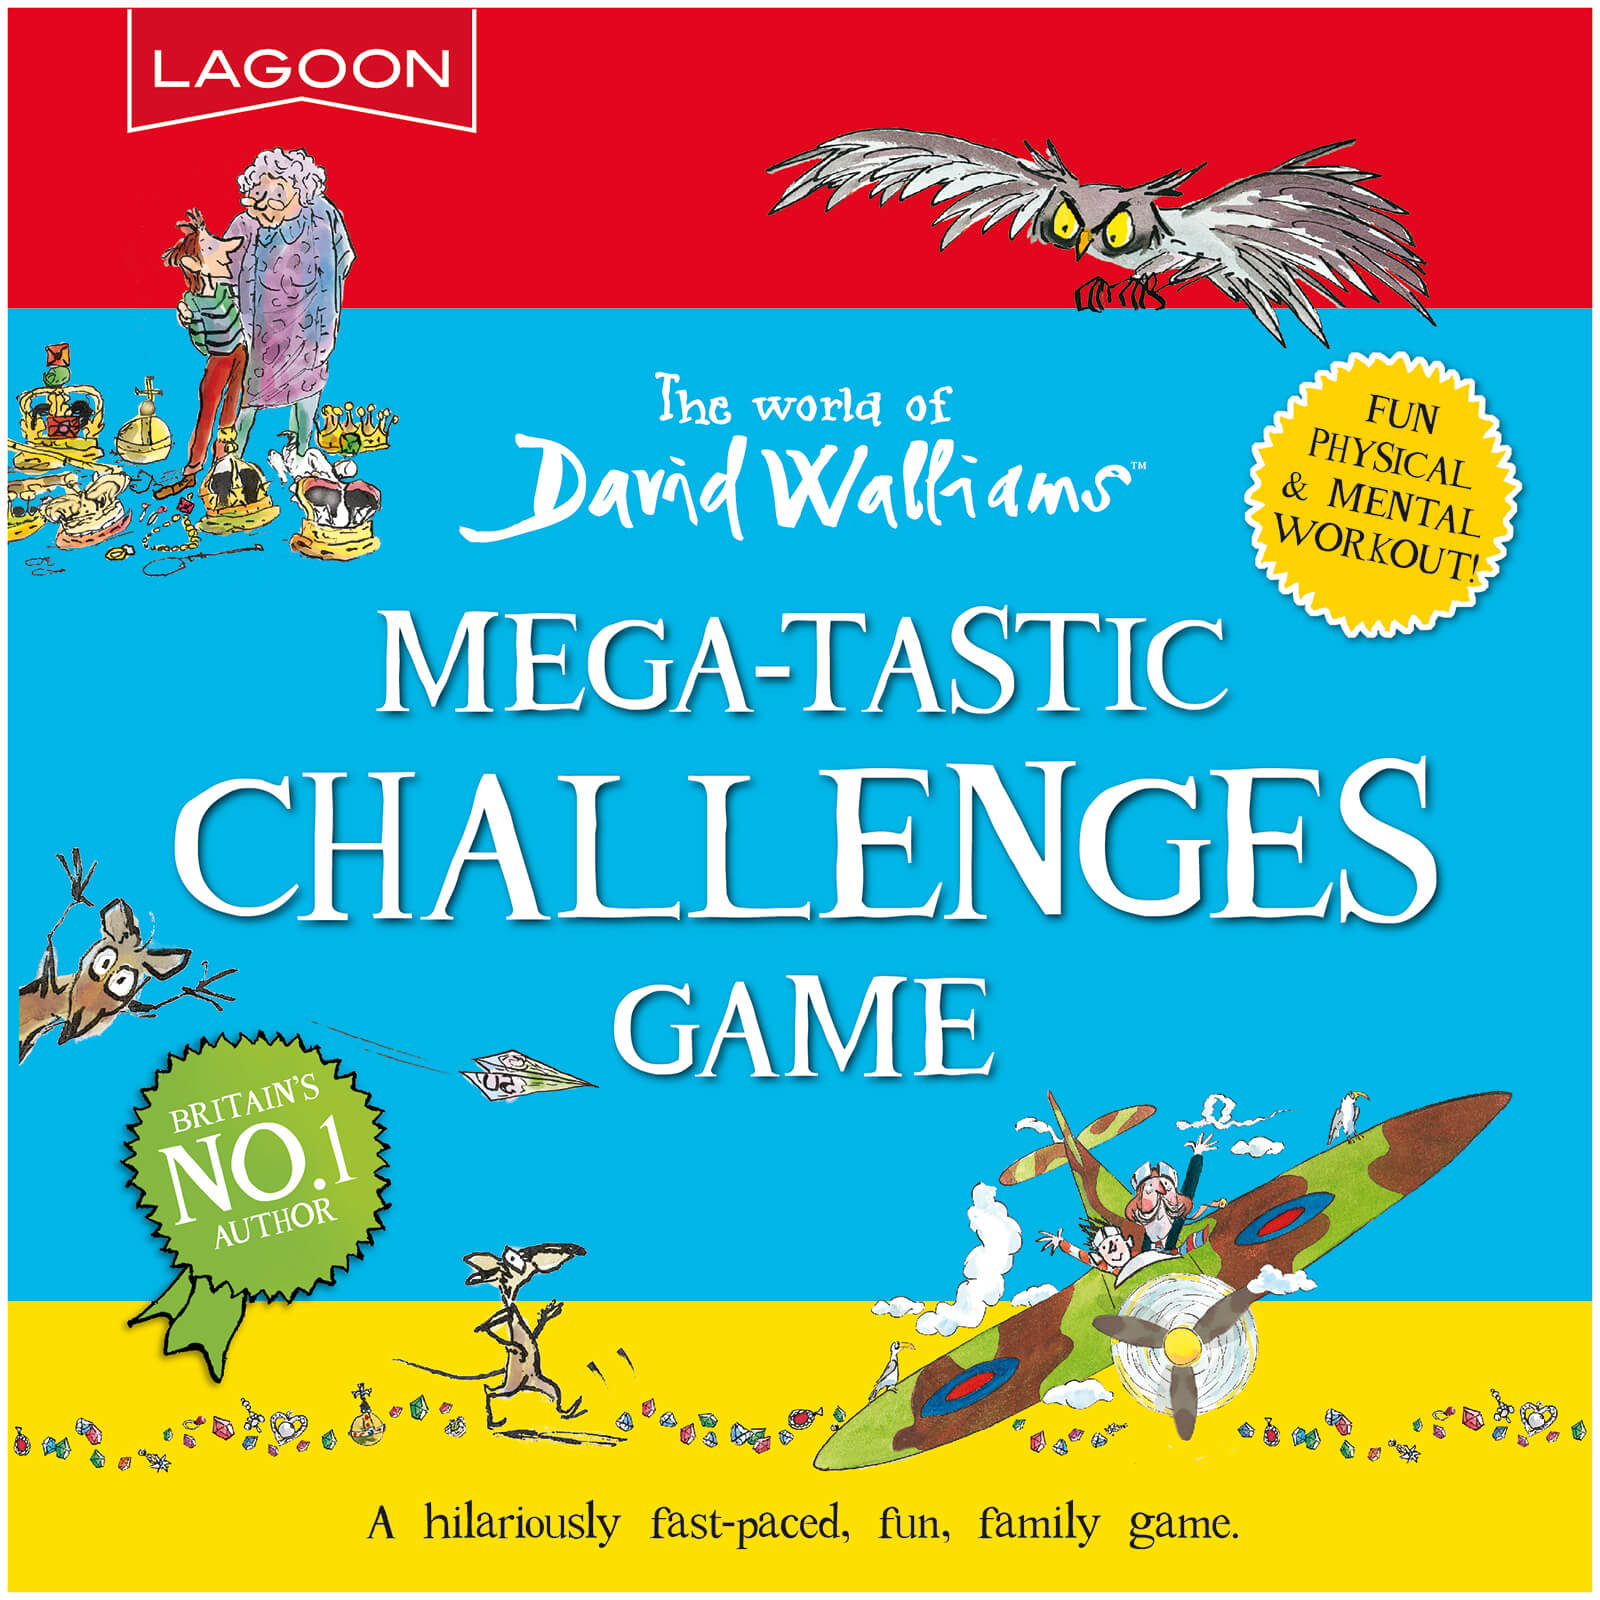 Image of David Walliams Mega-Tastic Challenges Games